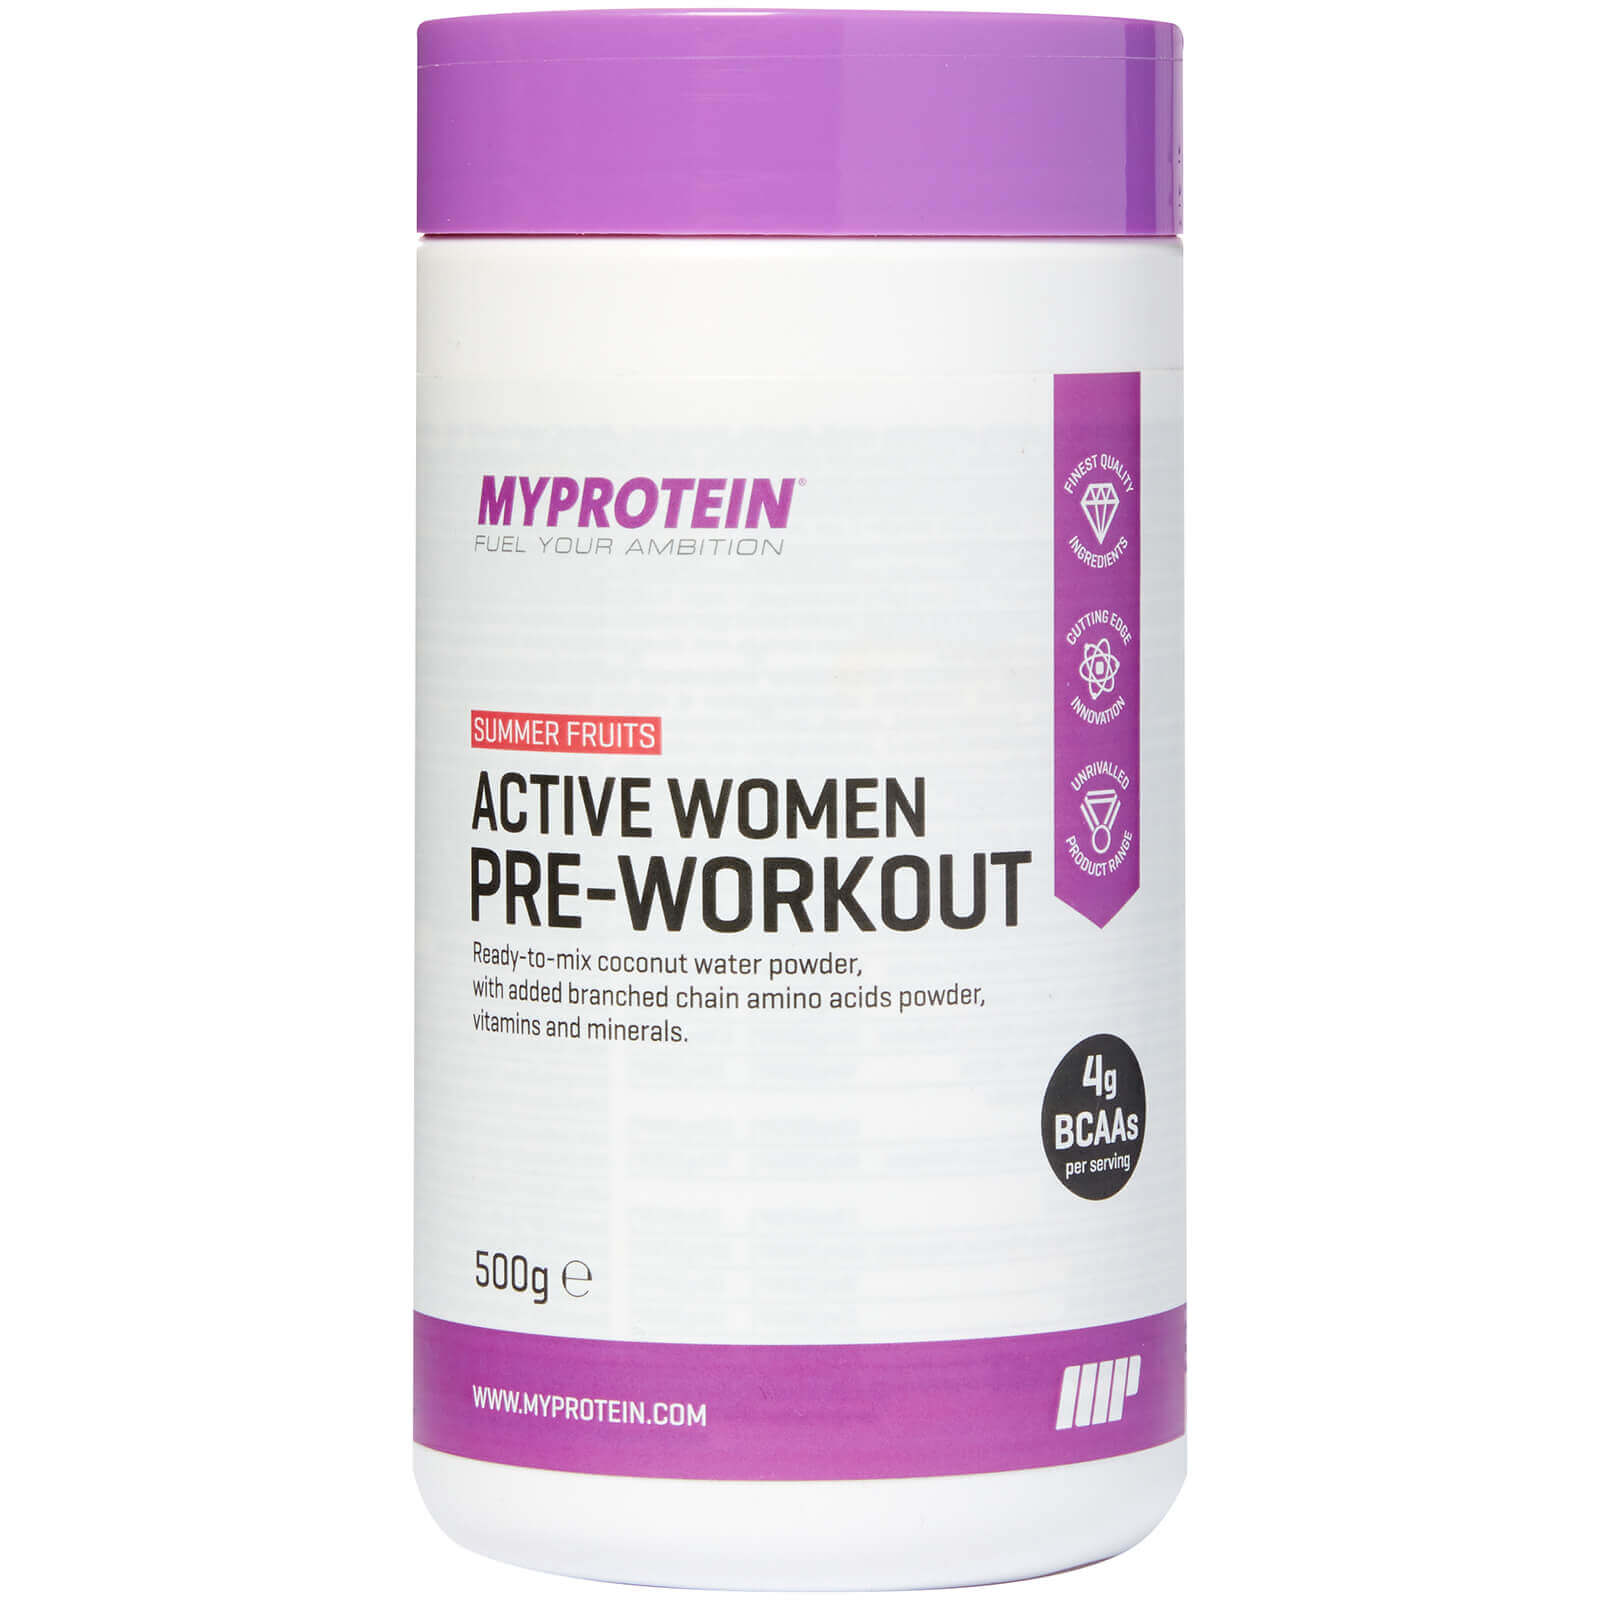 active women pre-workout - best pre-workout for women